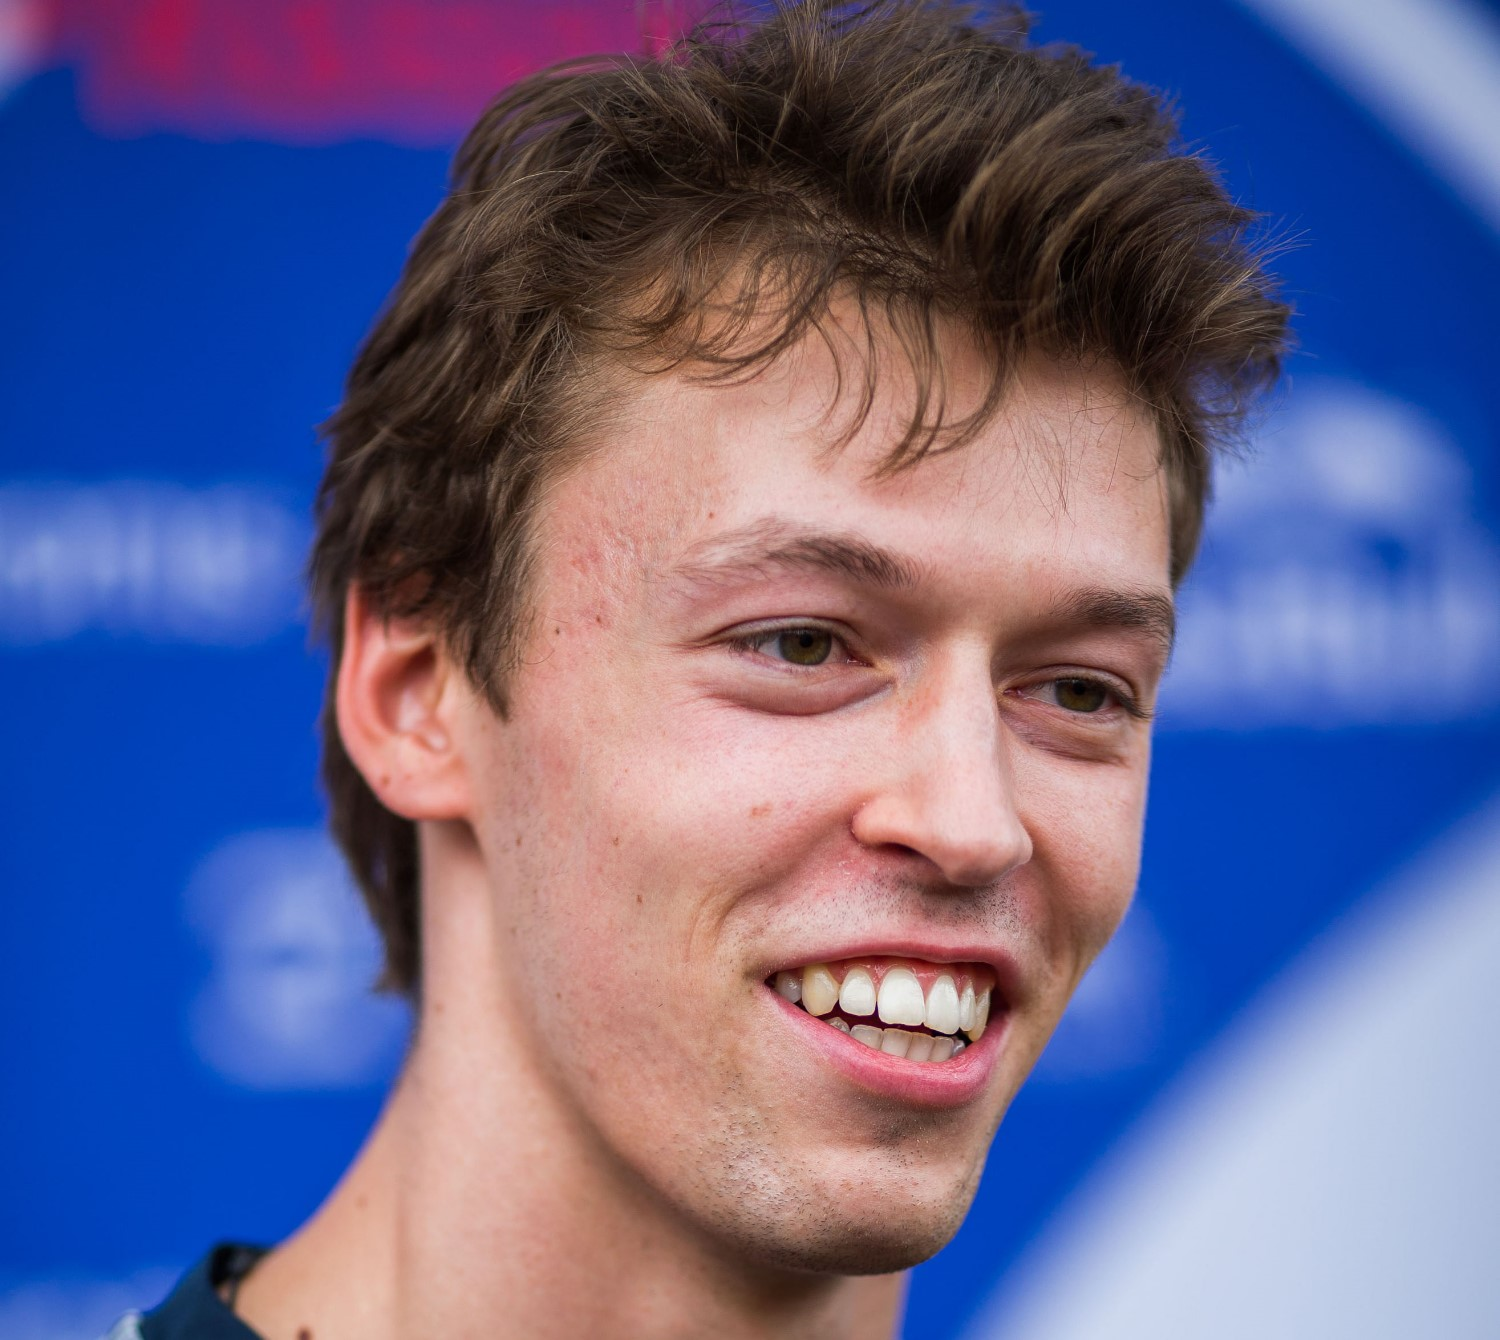 Daniil Kvyat could be replaced by Pierre Gasly